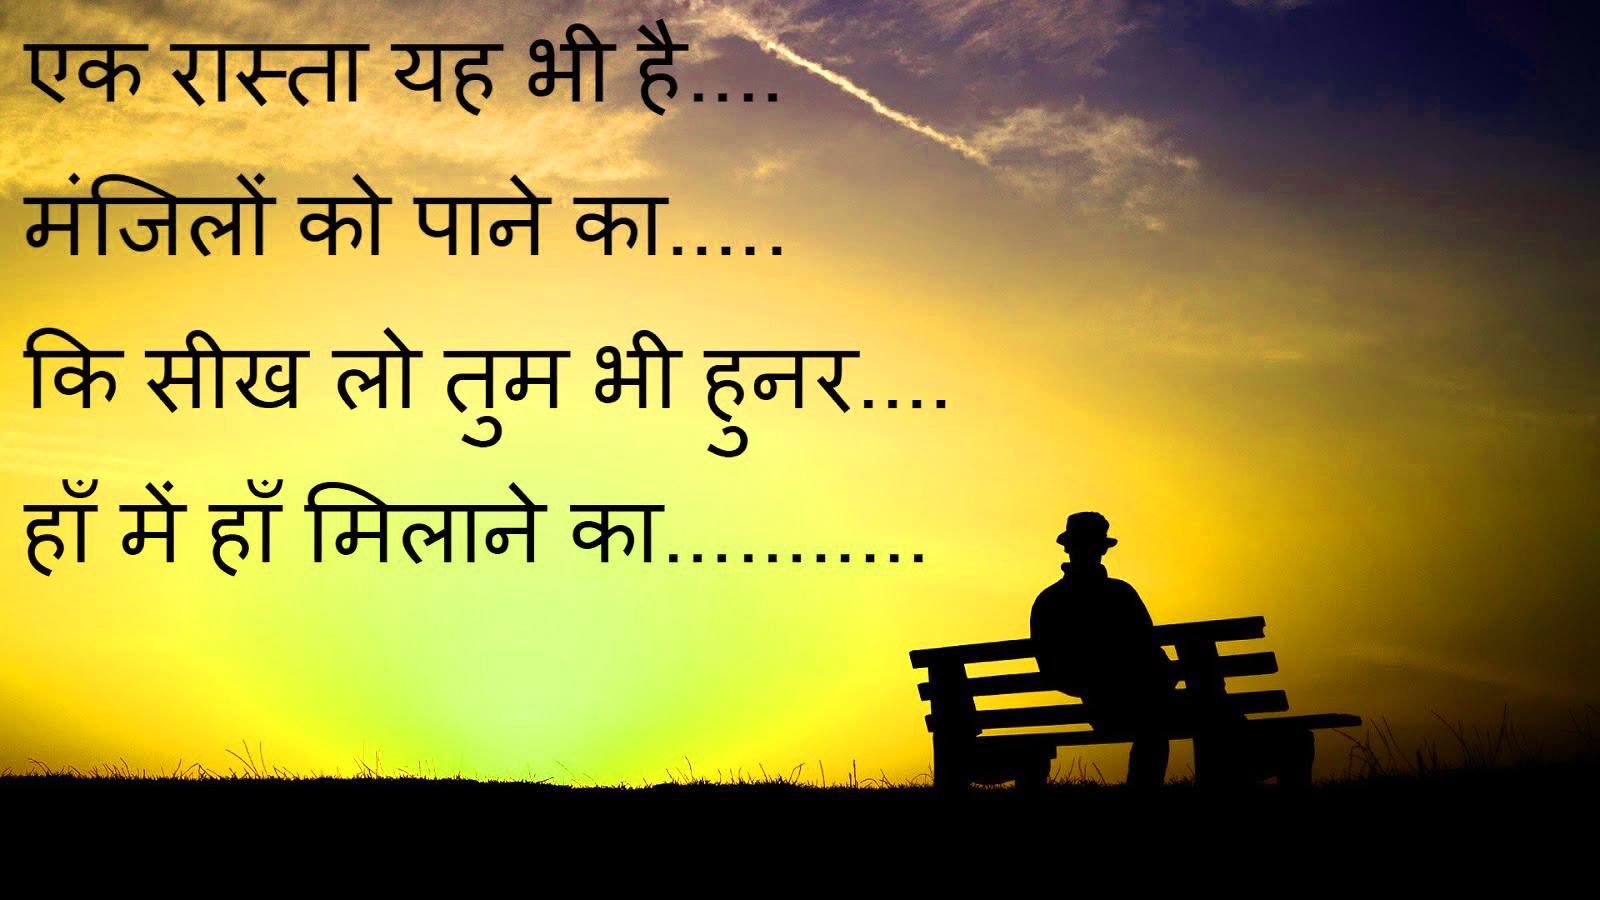 Hindi Quotes About Life and Love Images photo Pics Free Download